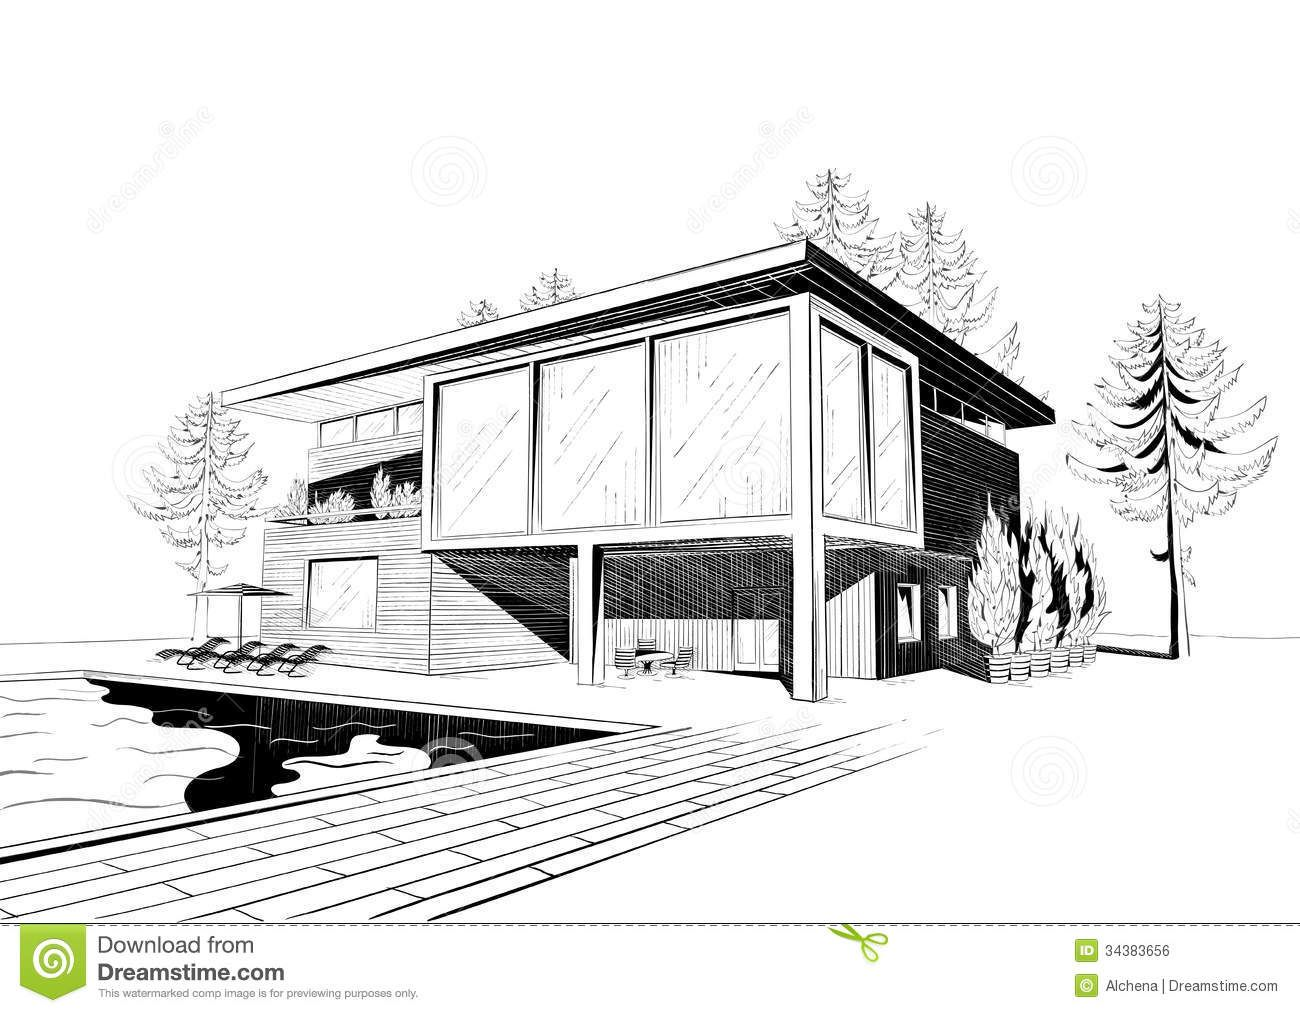 architecture house sketch new architecture sketches